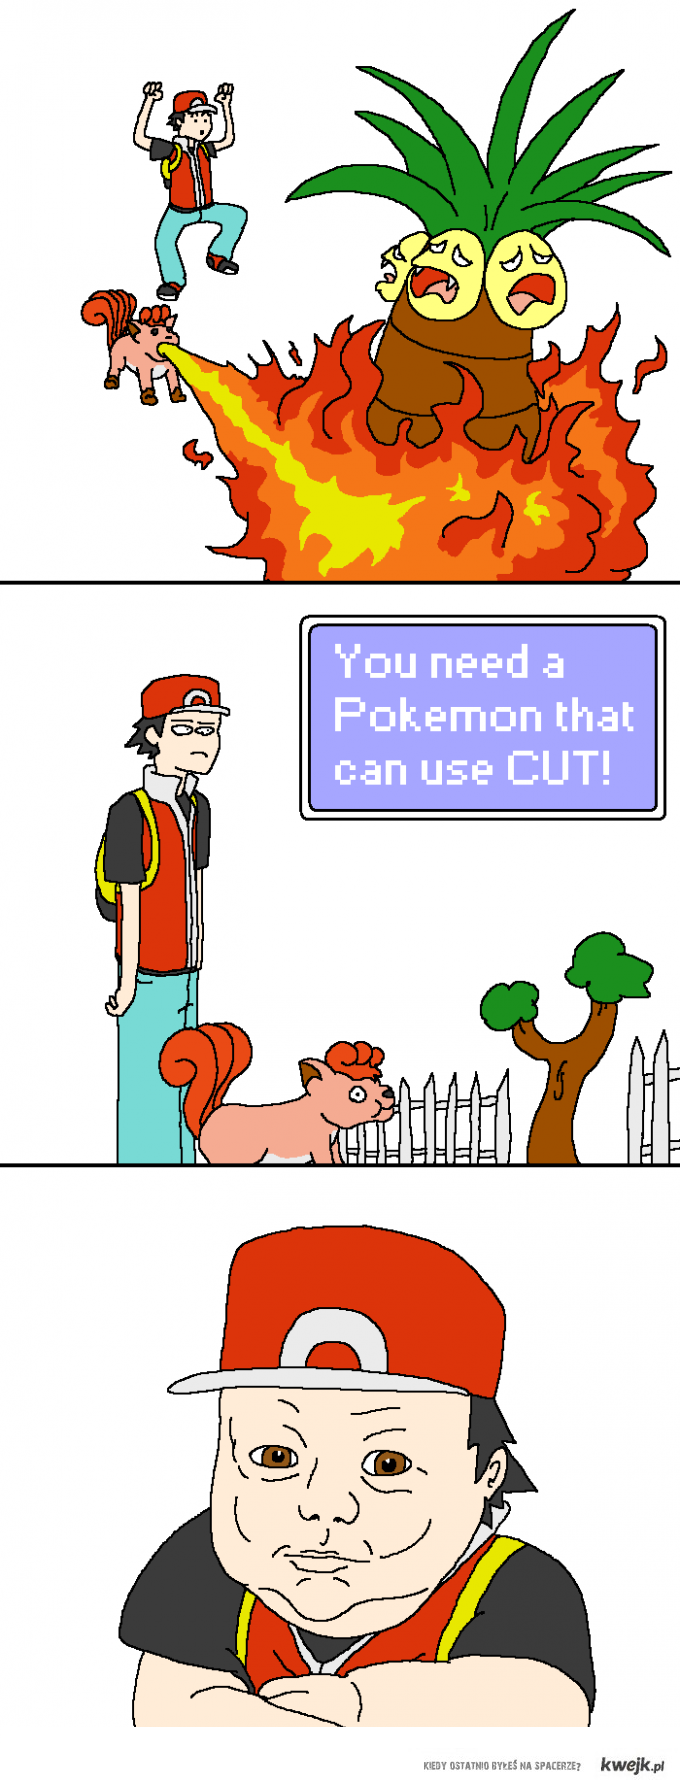 you need to cut